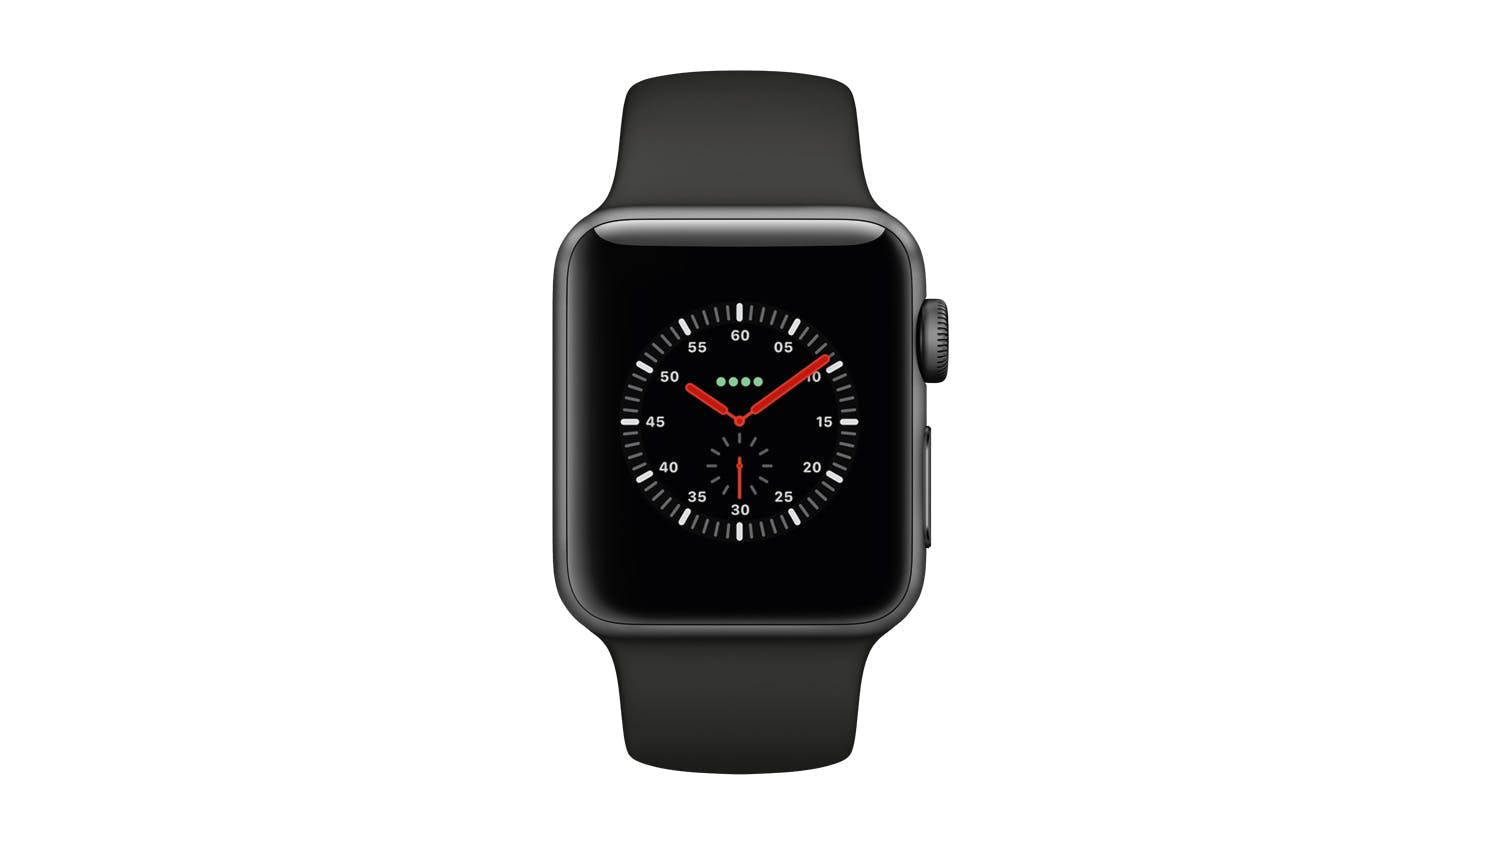 Apple Watch Series 3 (GPS+Cellular) 38mm Space Grey + Black Sport Band